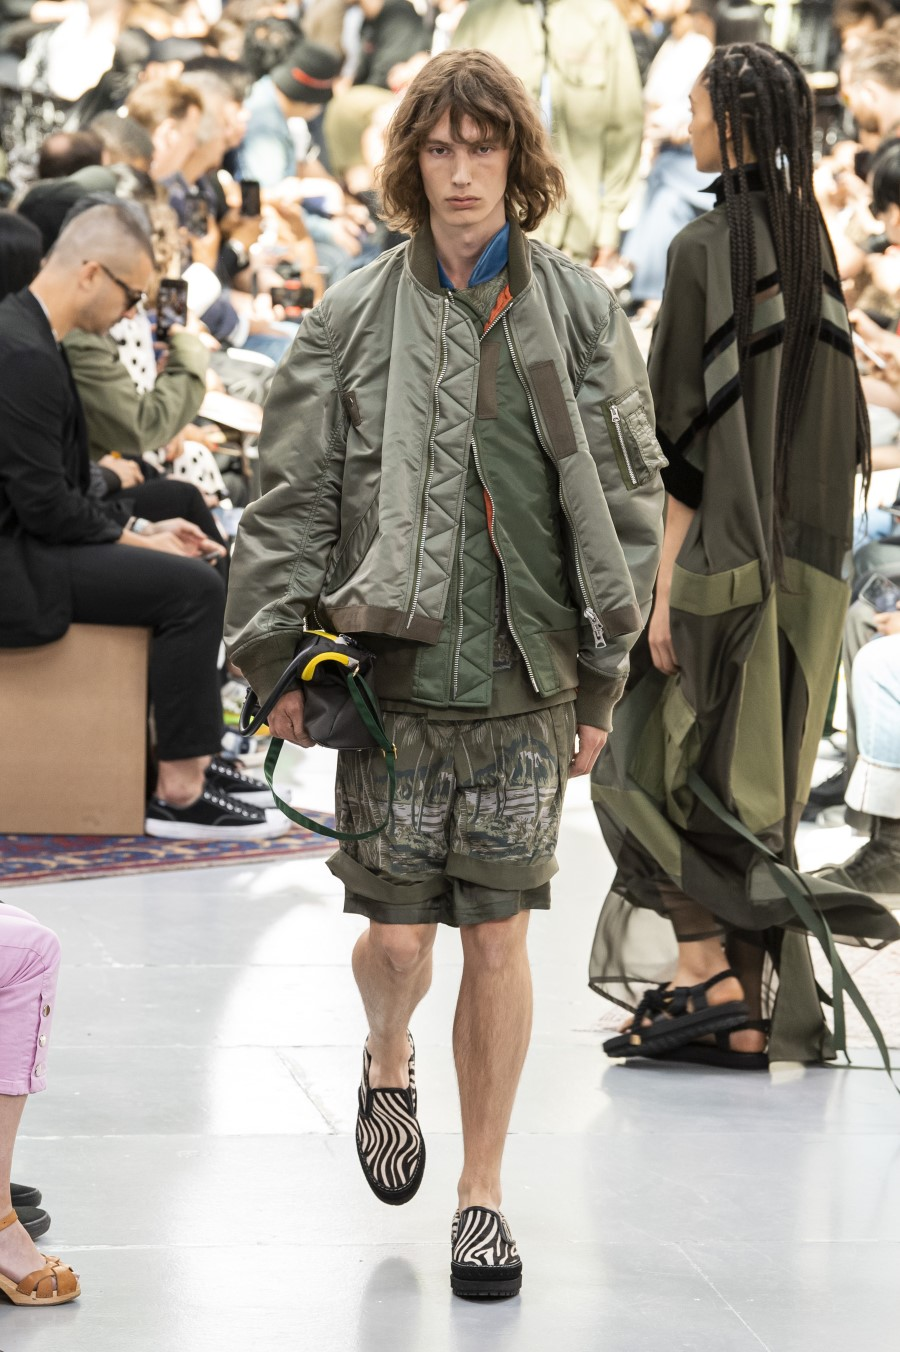 Sacai - Printemps-Été 2020 - Paris Fashion Week